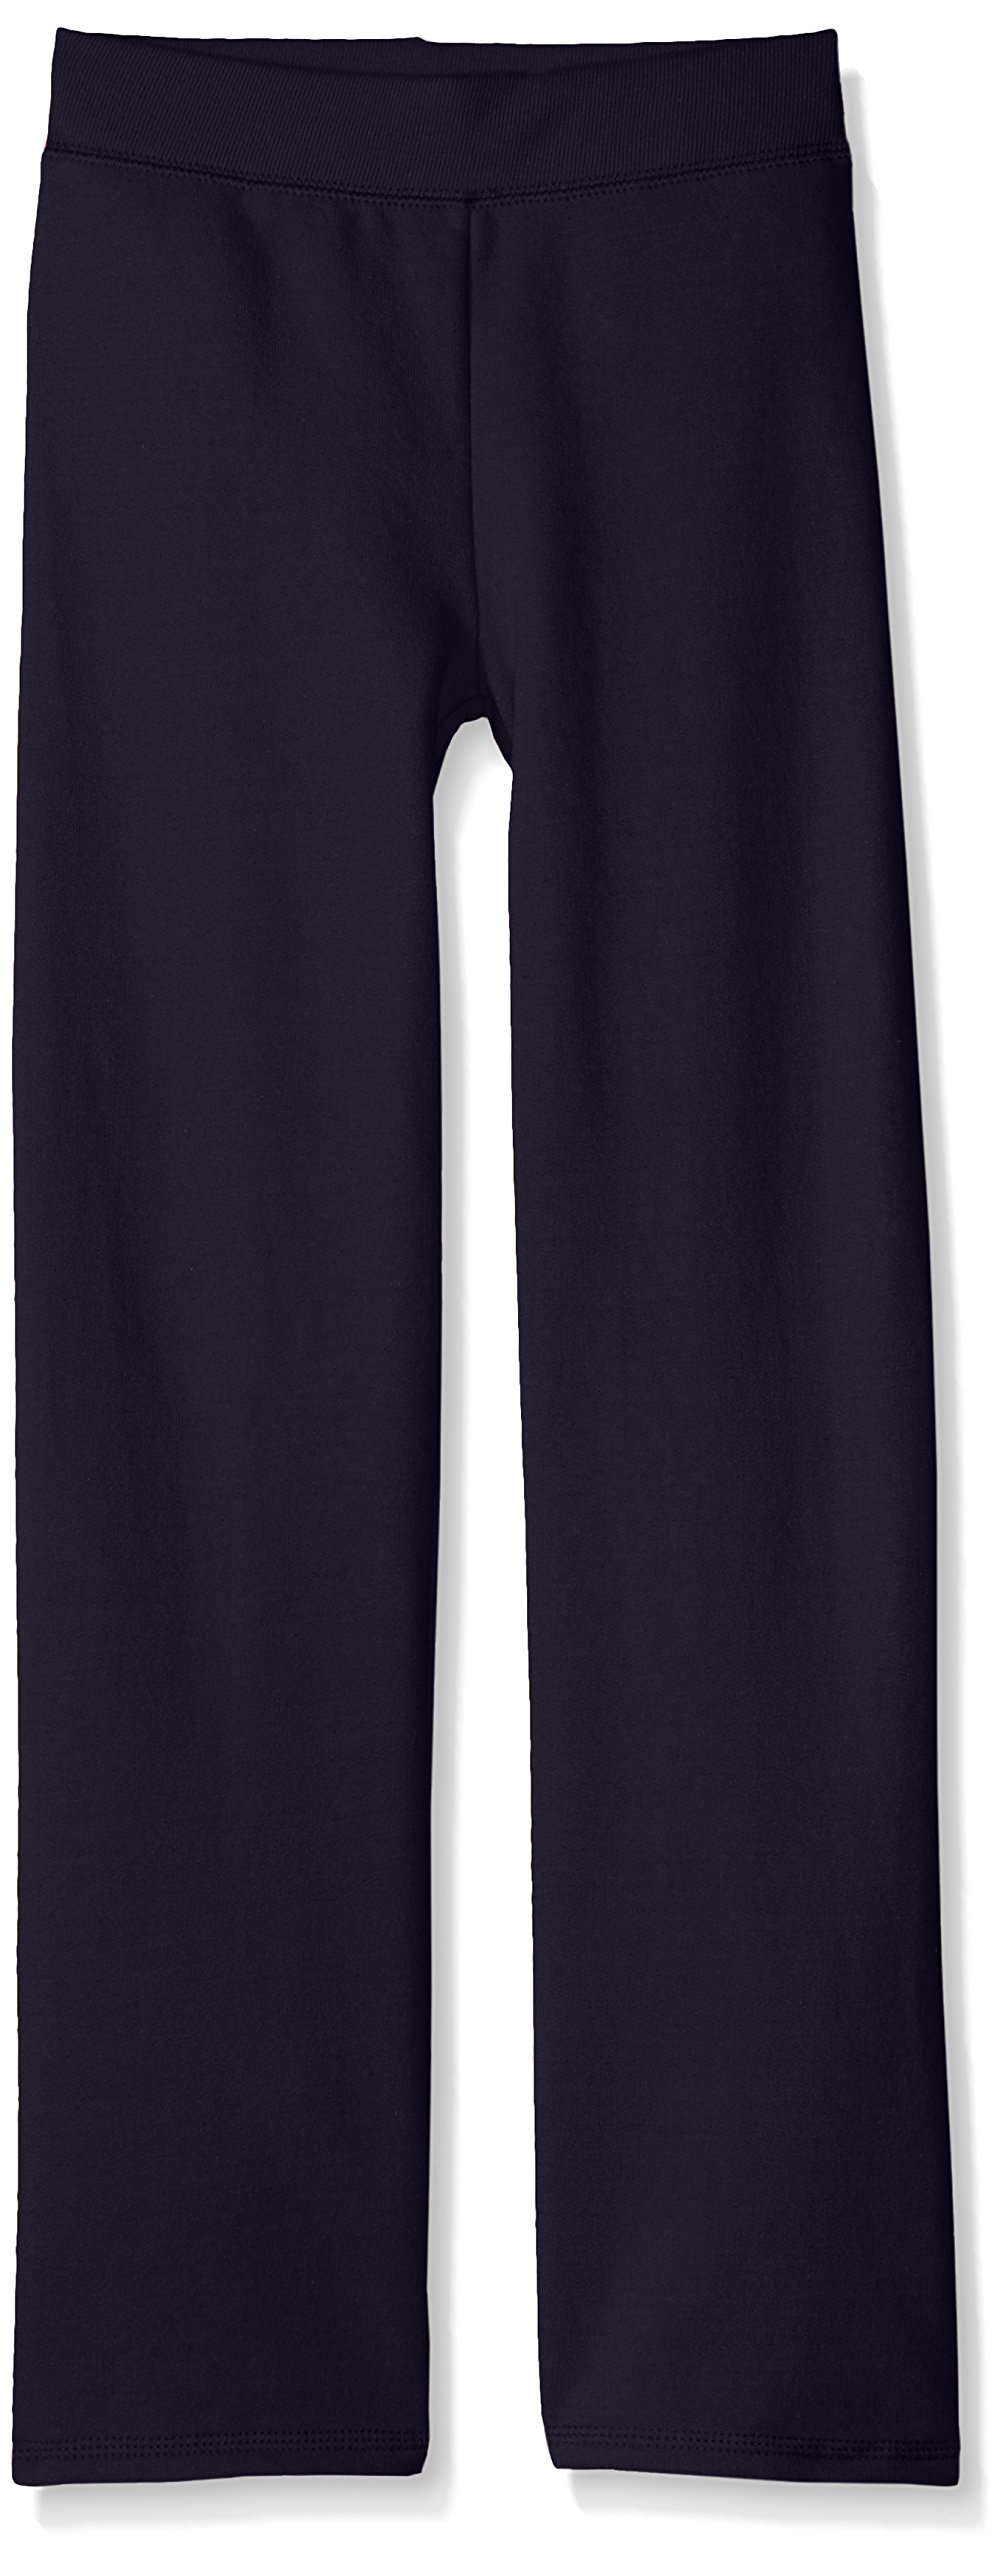 Hanes ComfortSoft EcoSmart Girls' Open Bottom Leg Sweatpants